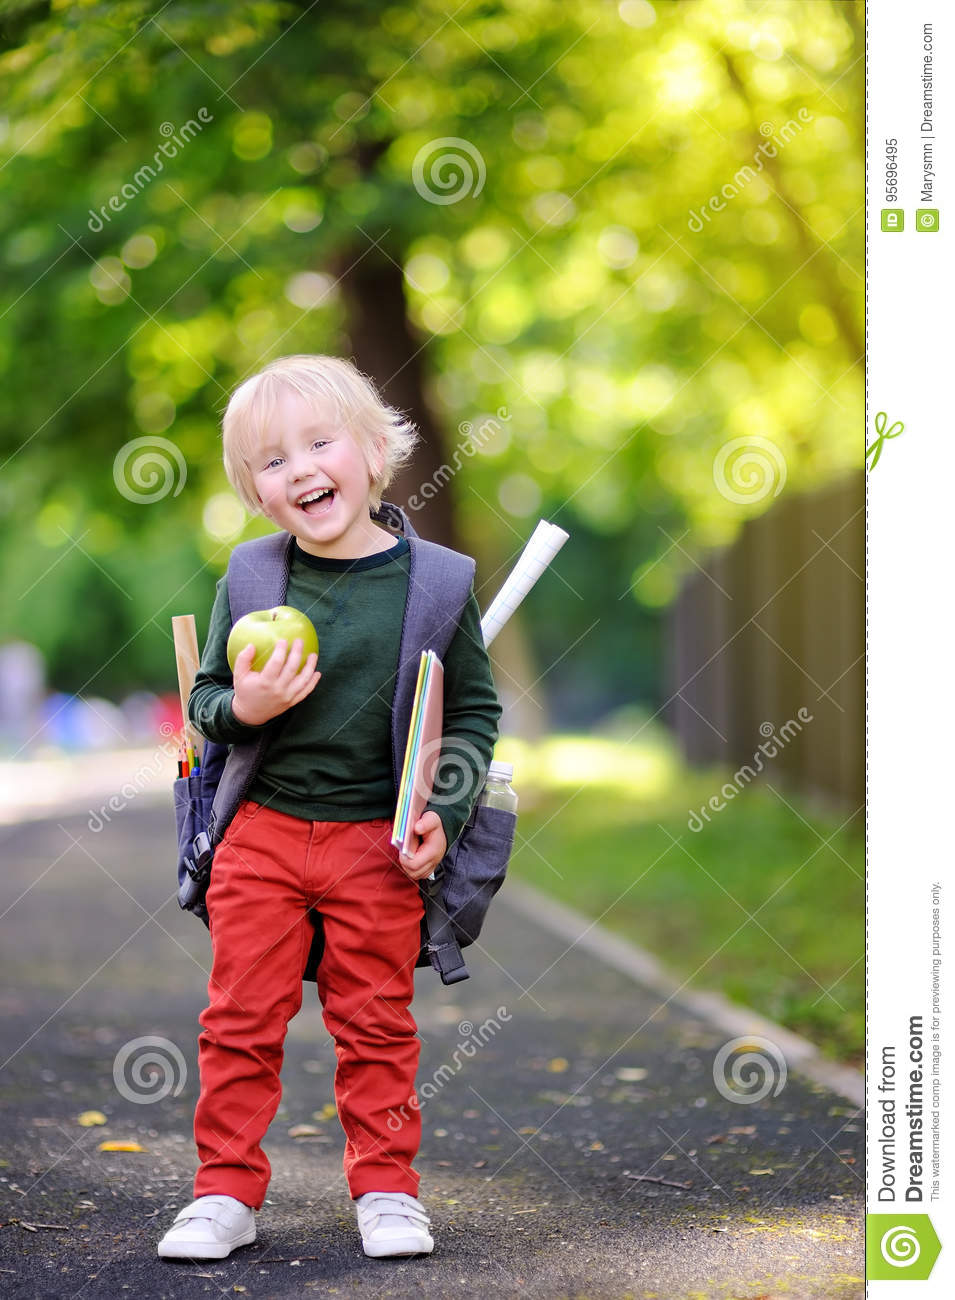 Cute little schoolboy with his backpack and apple. Back to school concept.